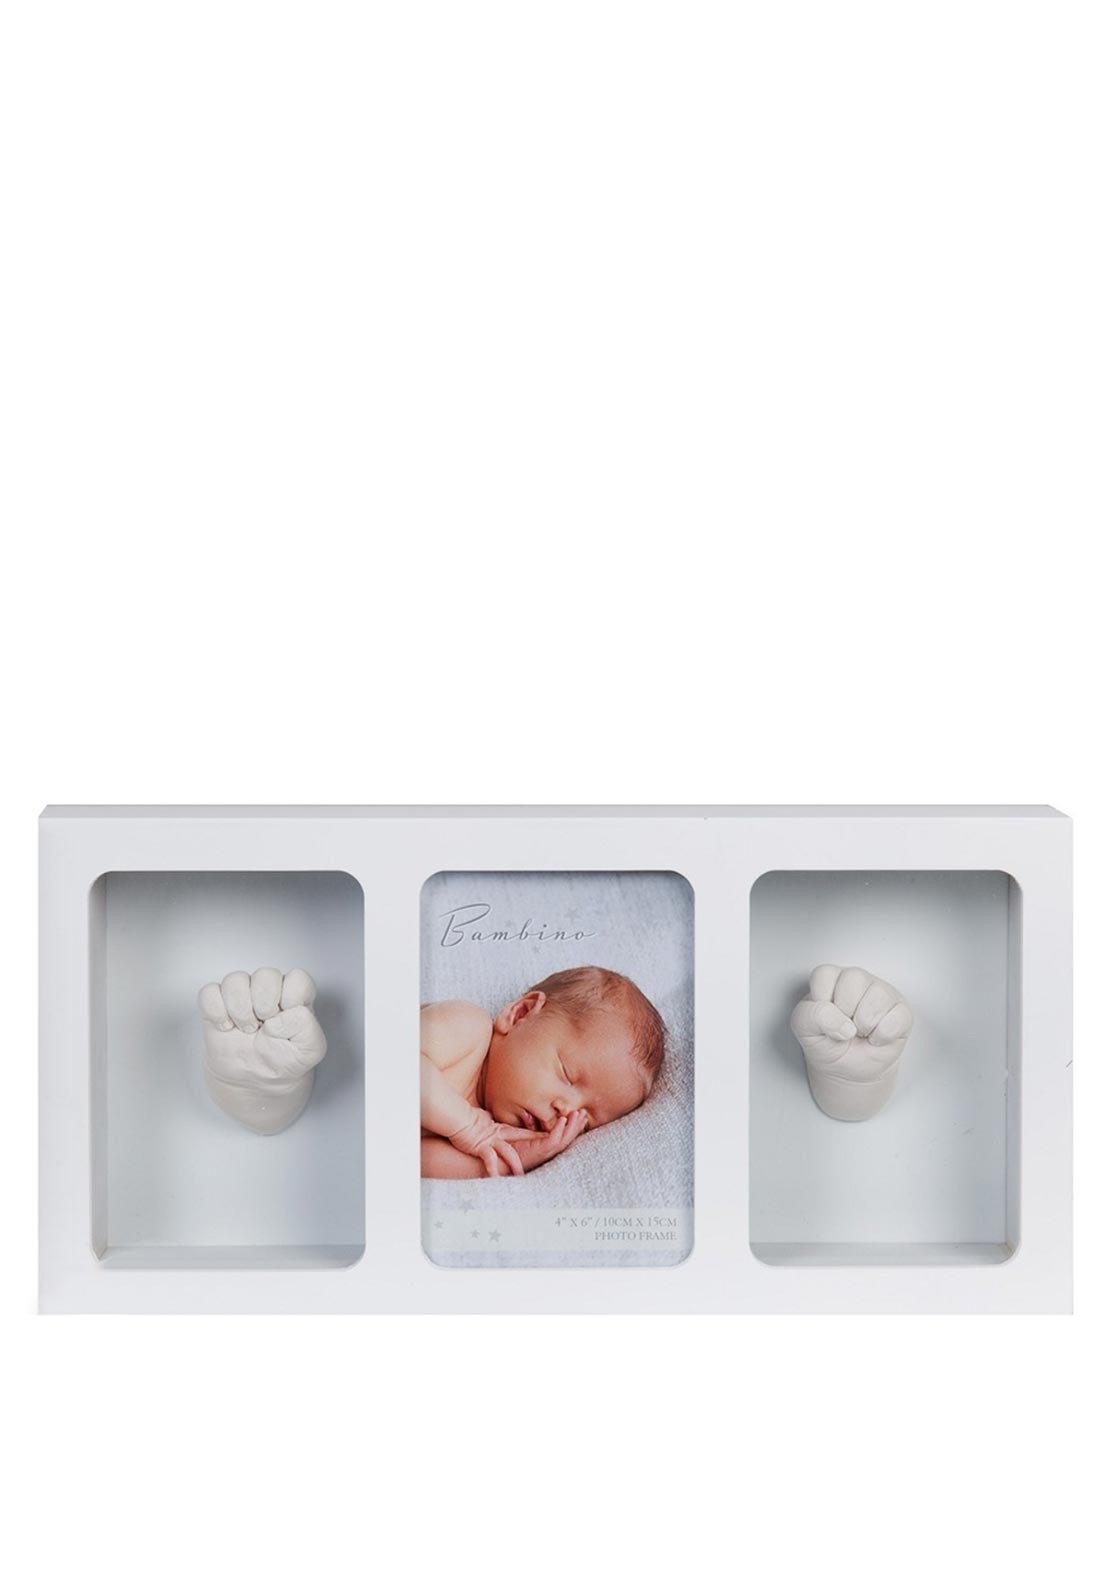 Bambino Clay Hand and Foot 3D Casting Kit